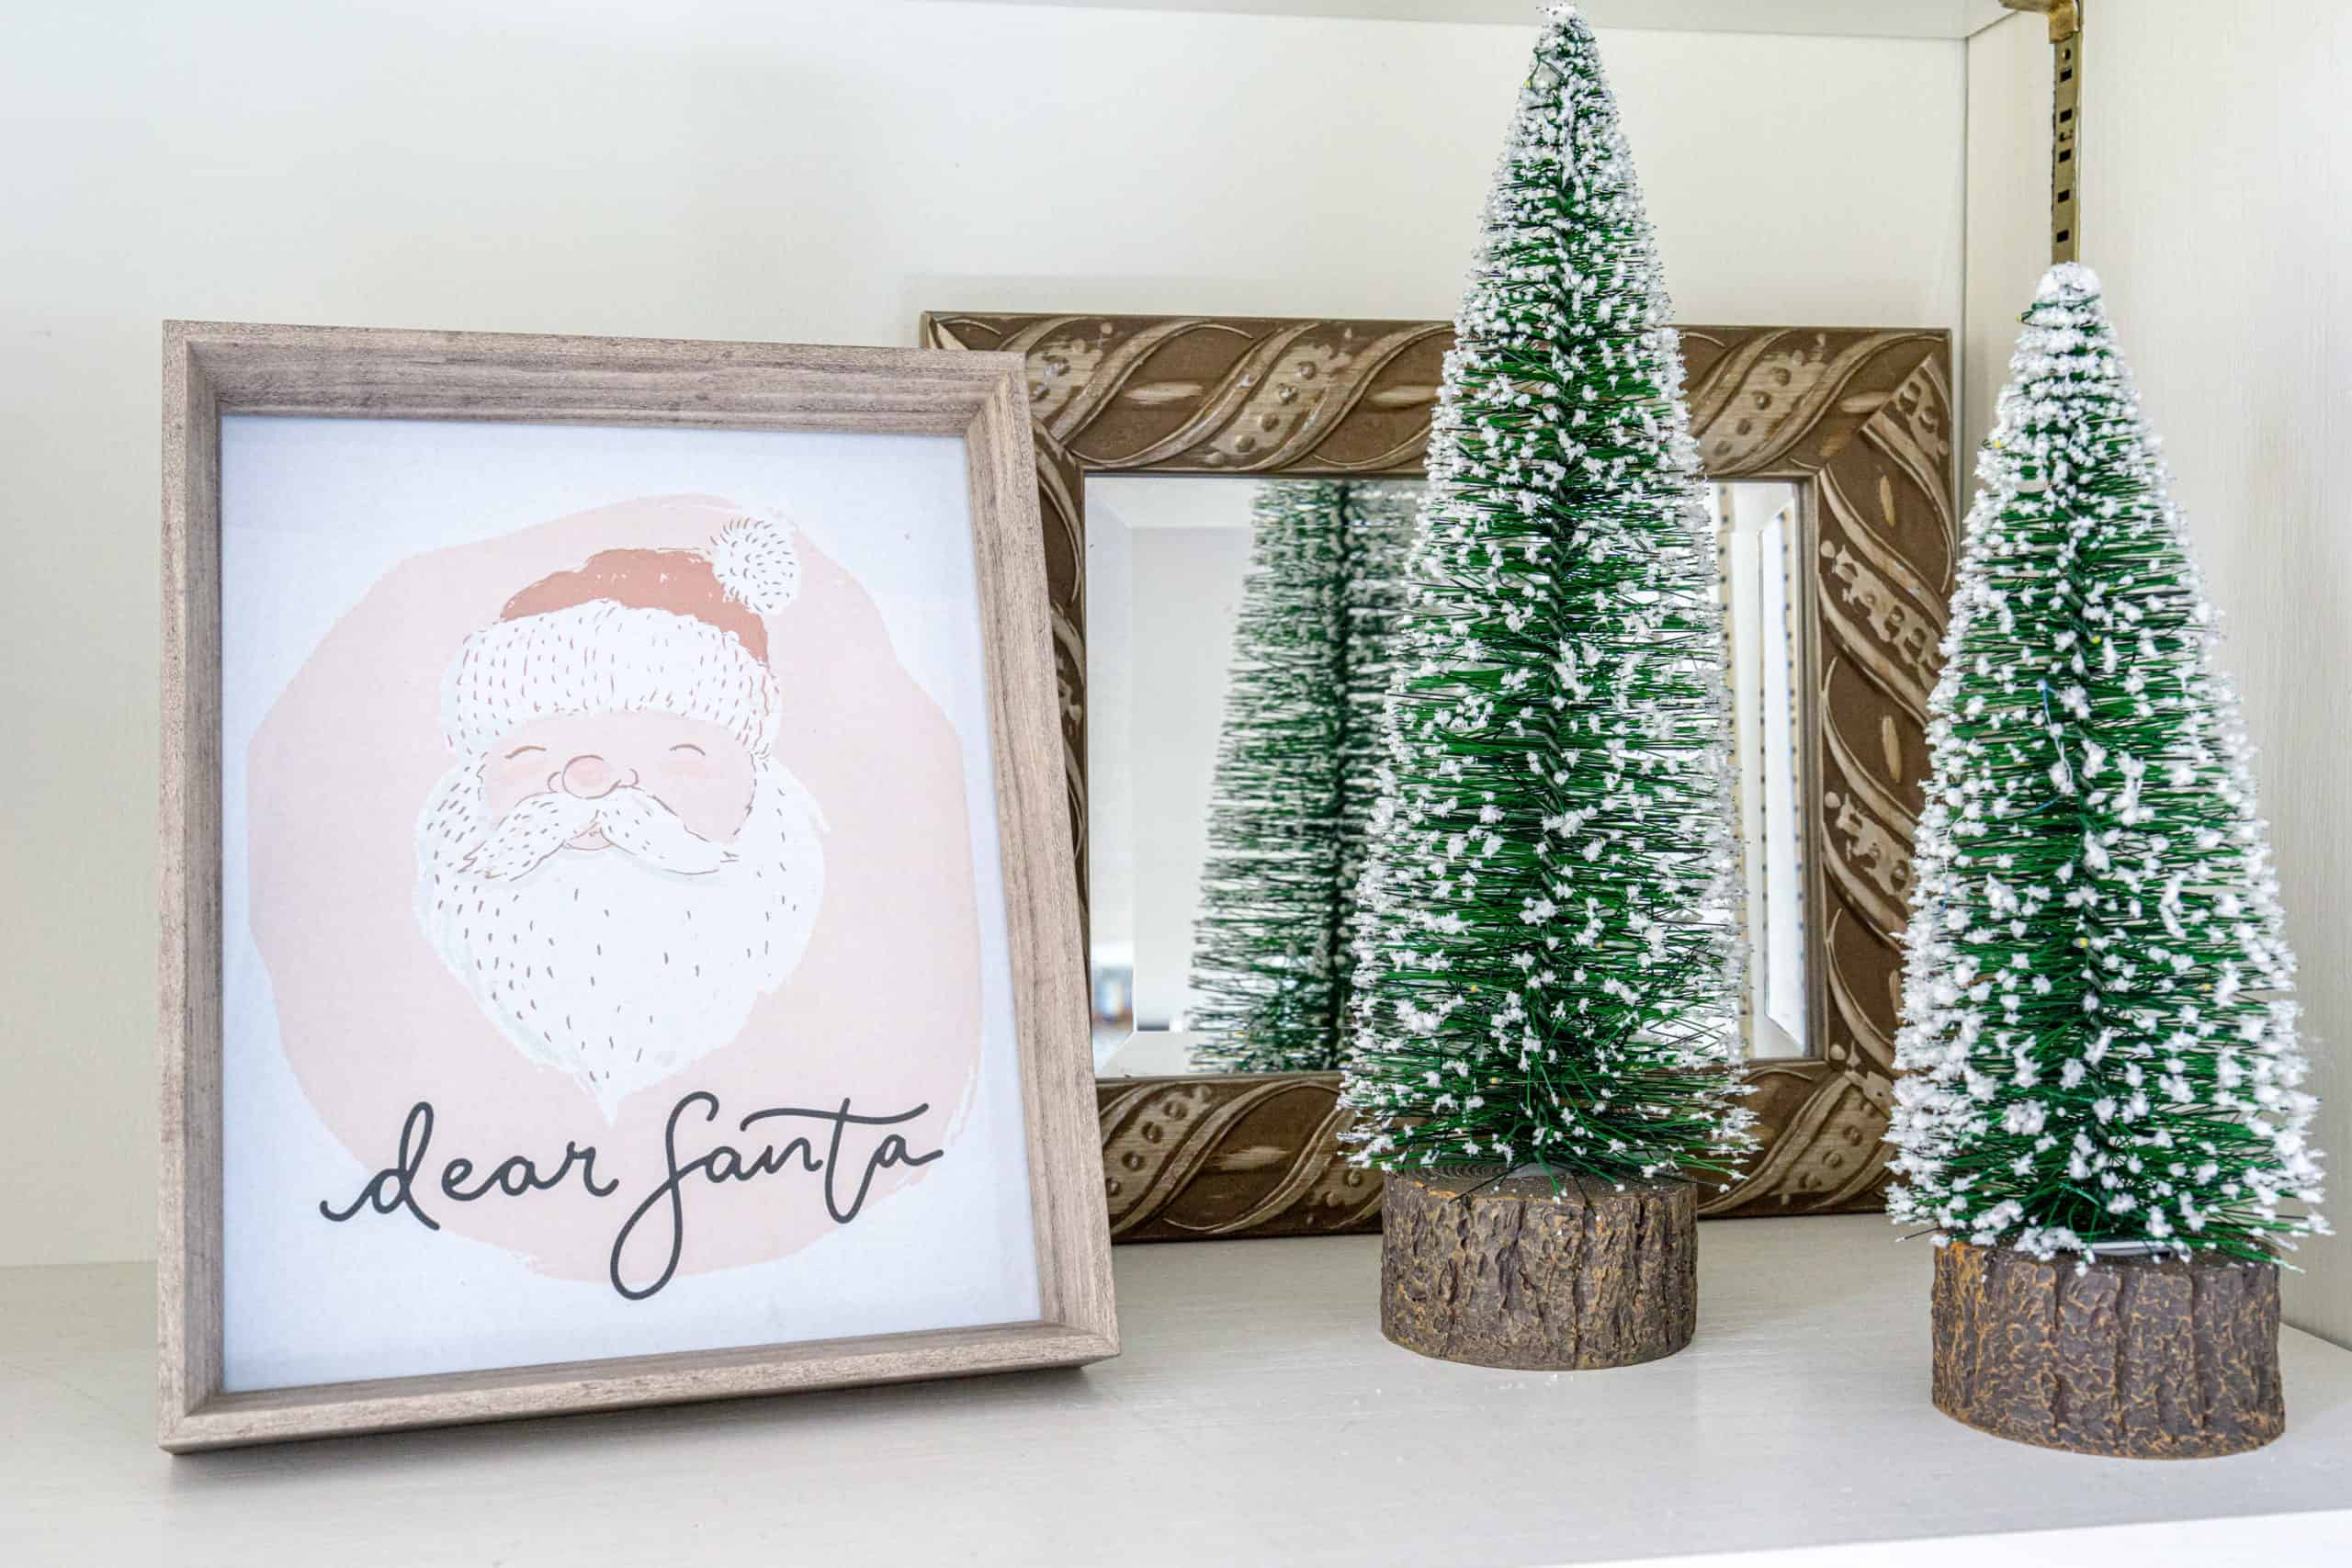 Add some holiday touches to your child's room with these free nursery Christmas art printables.